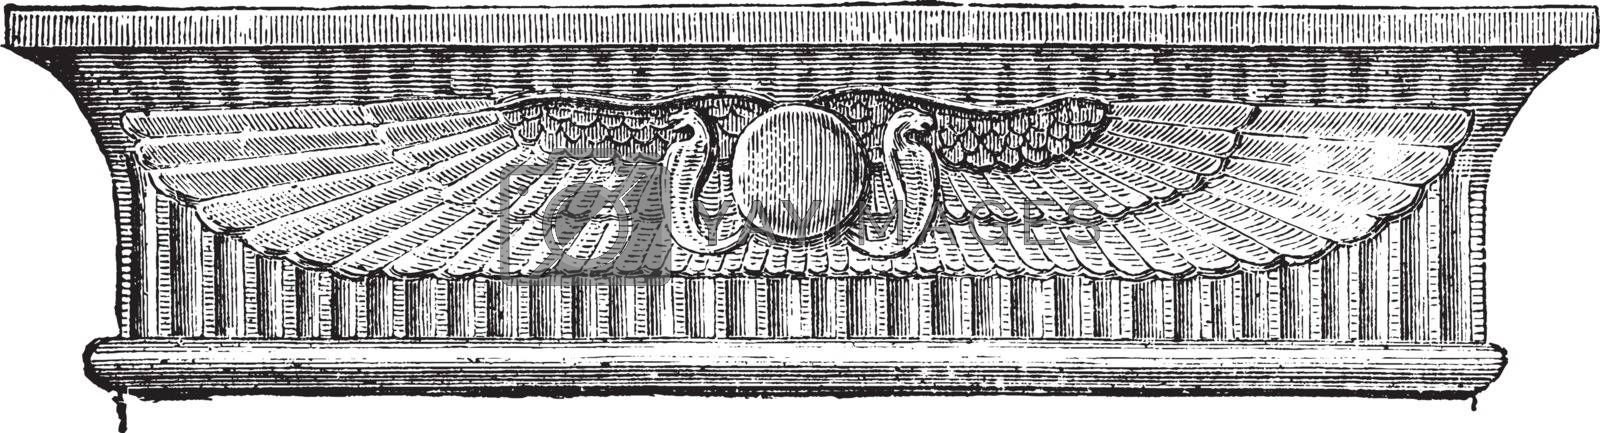 Architrave of Entablature over Doorway,  Great Temple, vintage e by Morphart